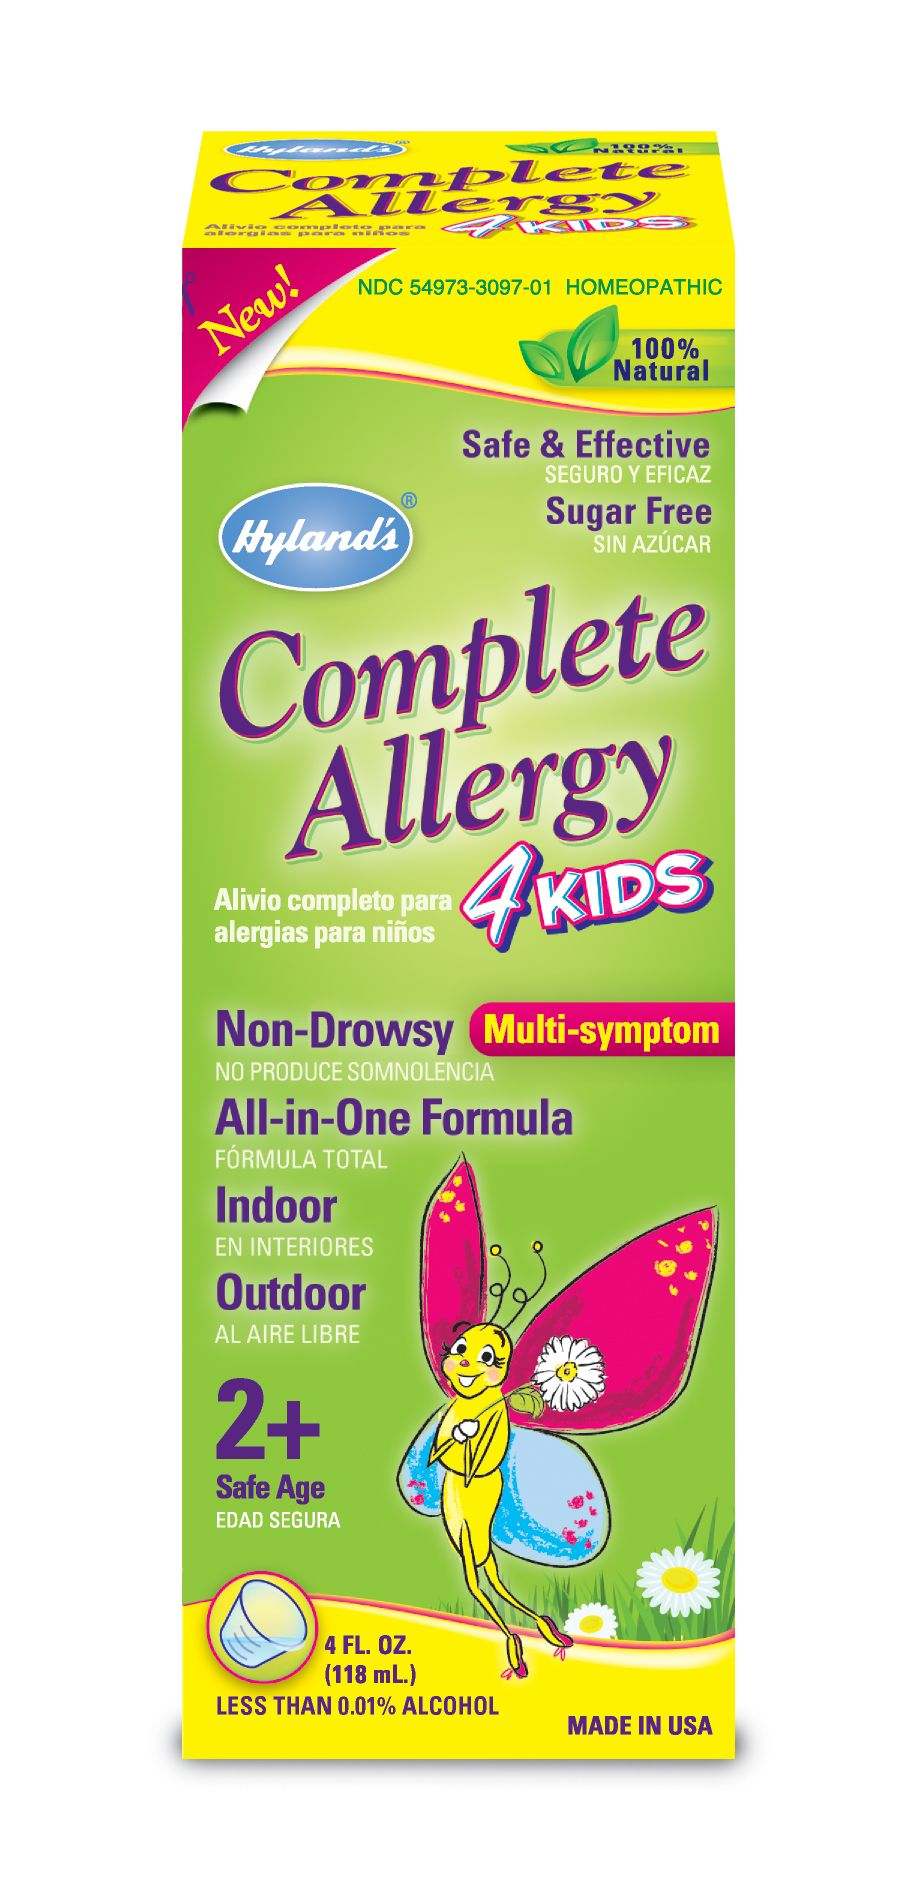 Hyland's Complete Allergy 4 Kids | Natural Allergy Remedies